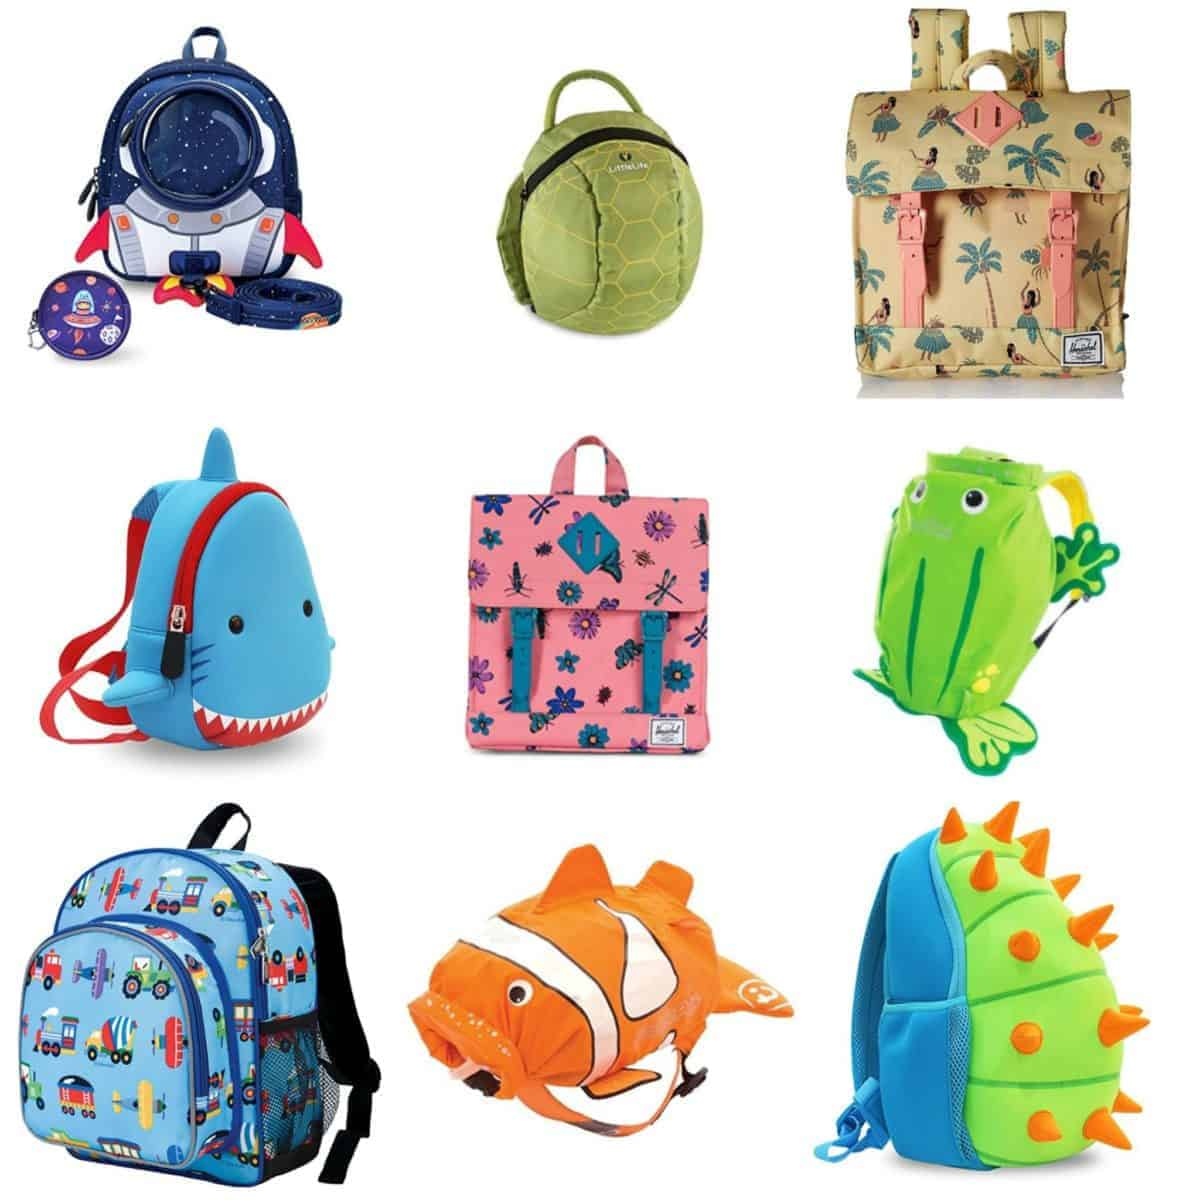 2018 sneakers discover latest trends select for newest Chosing the Best Toddler Backpack for Travelling - merry-go ...